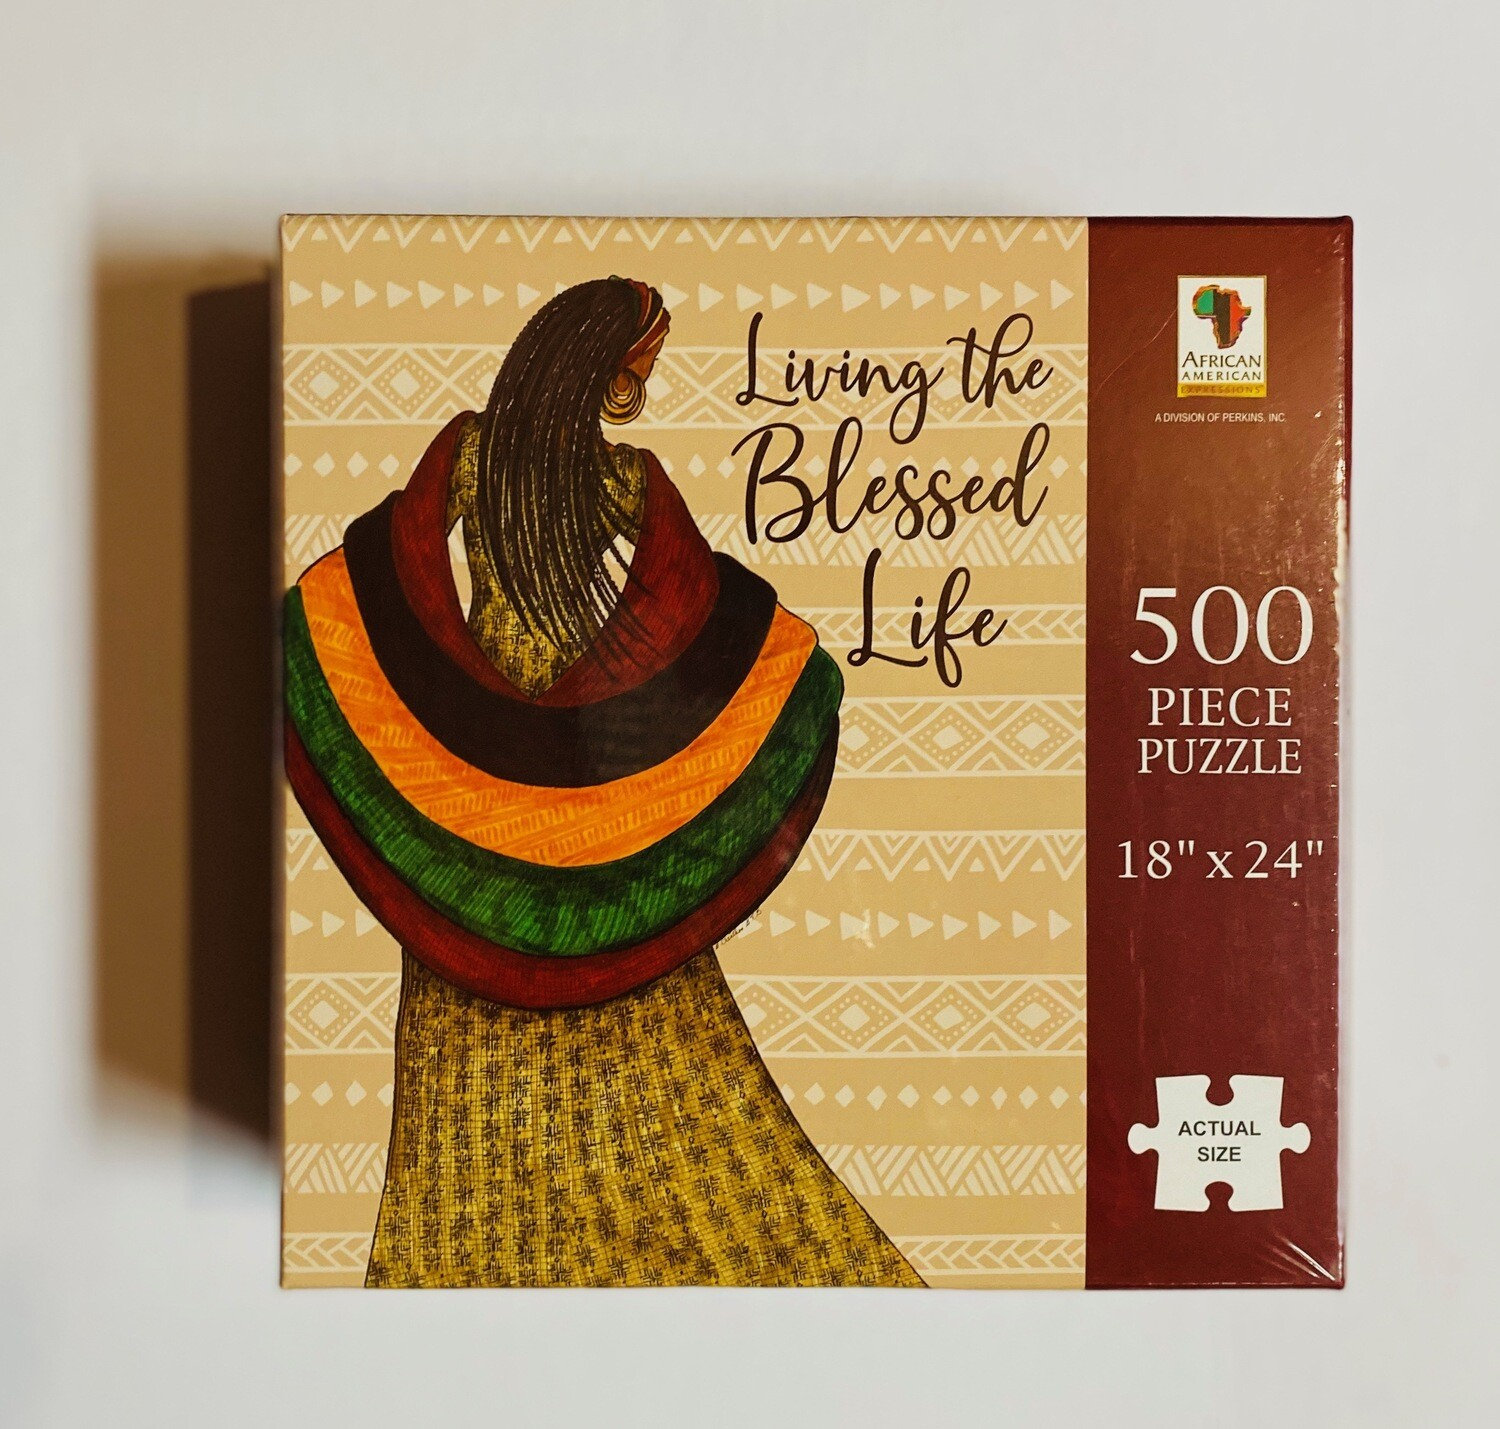 Puzzle - Living the Blessed Life